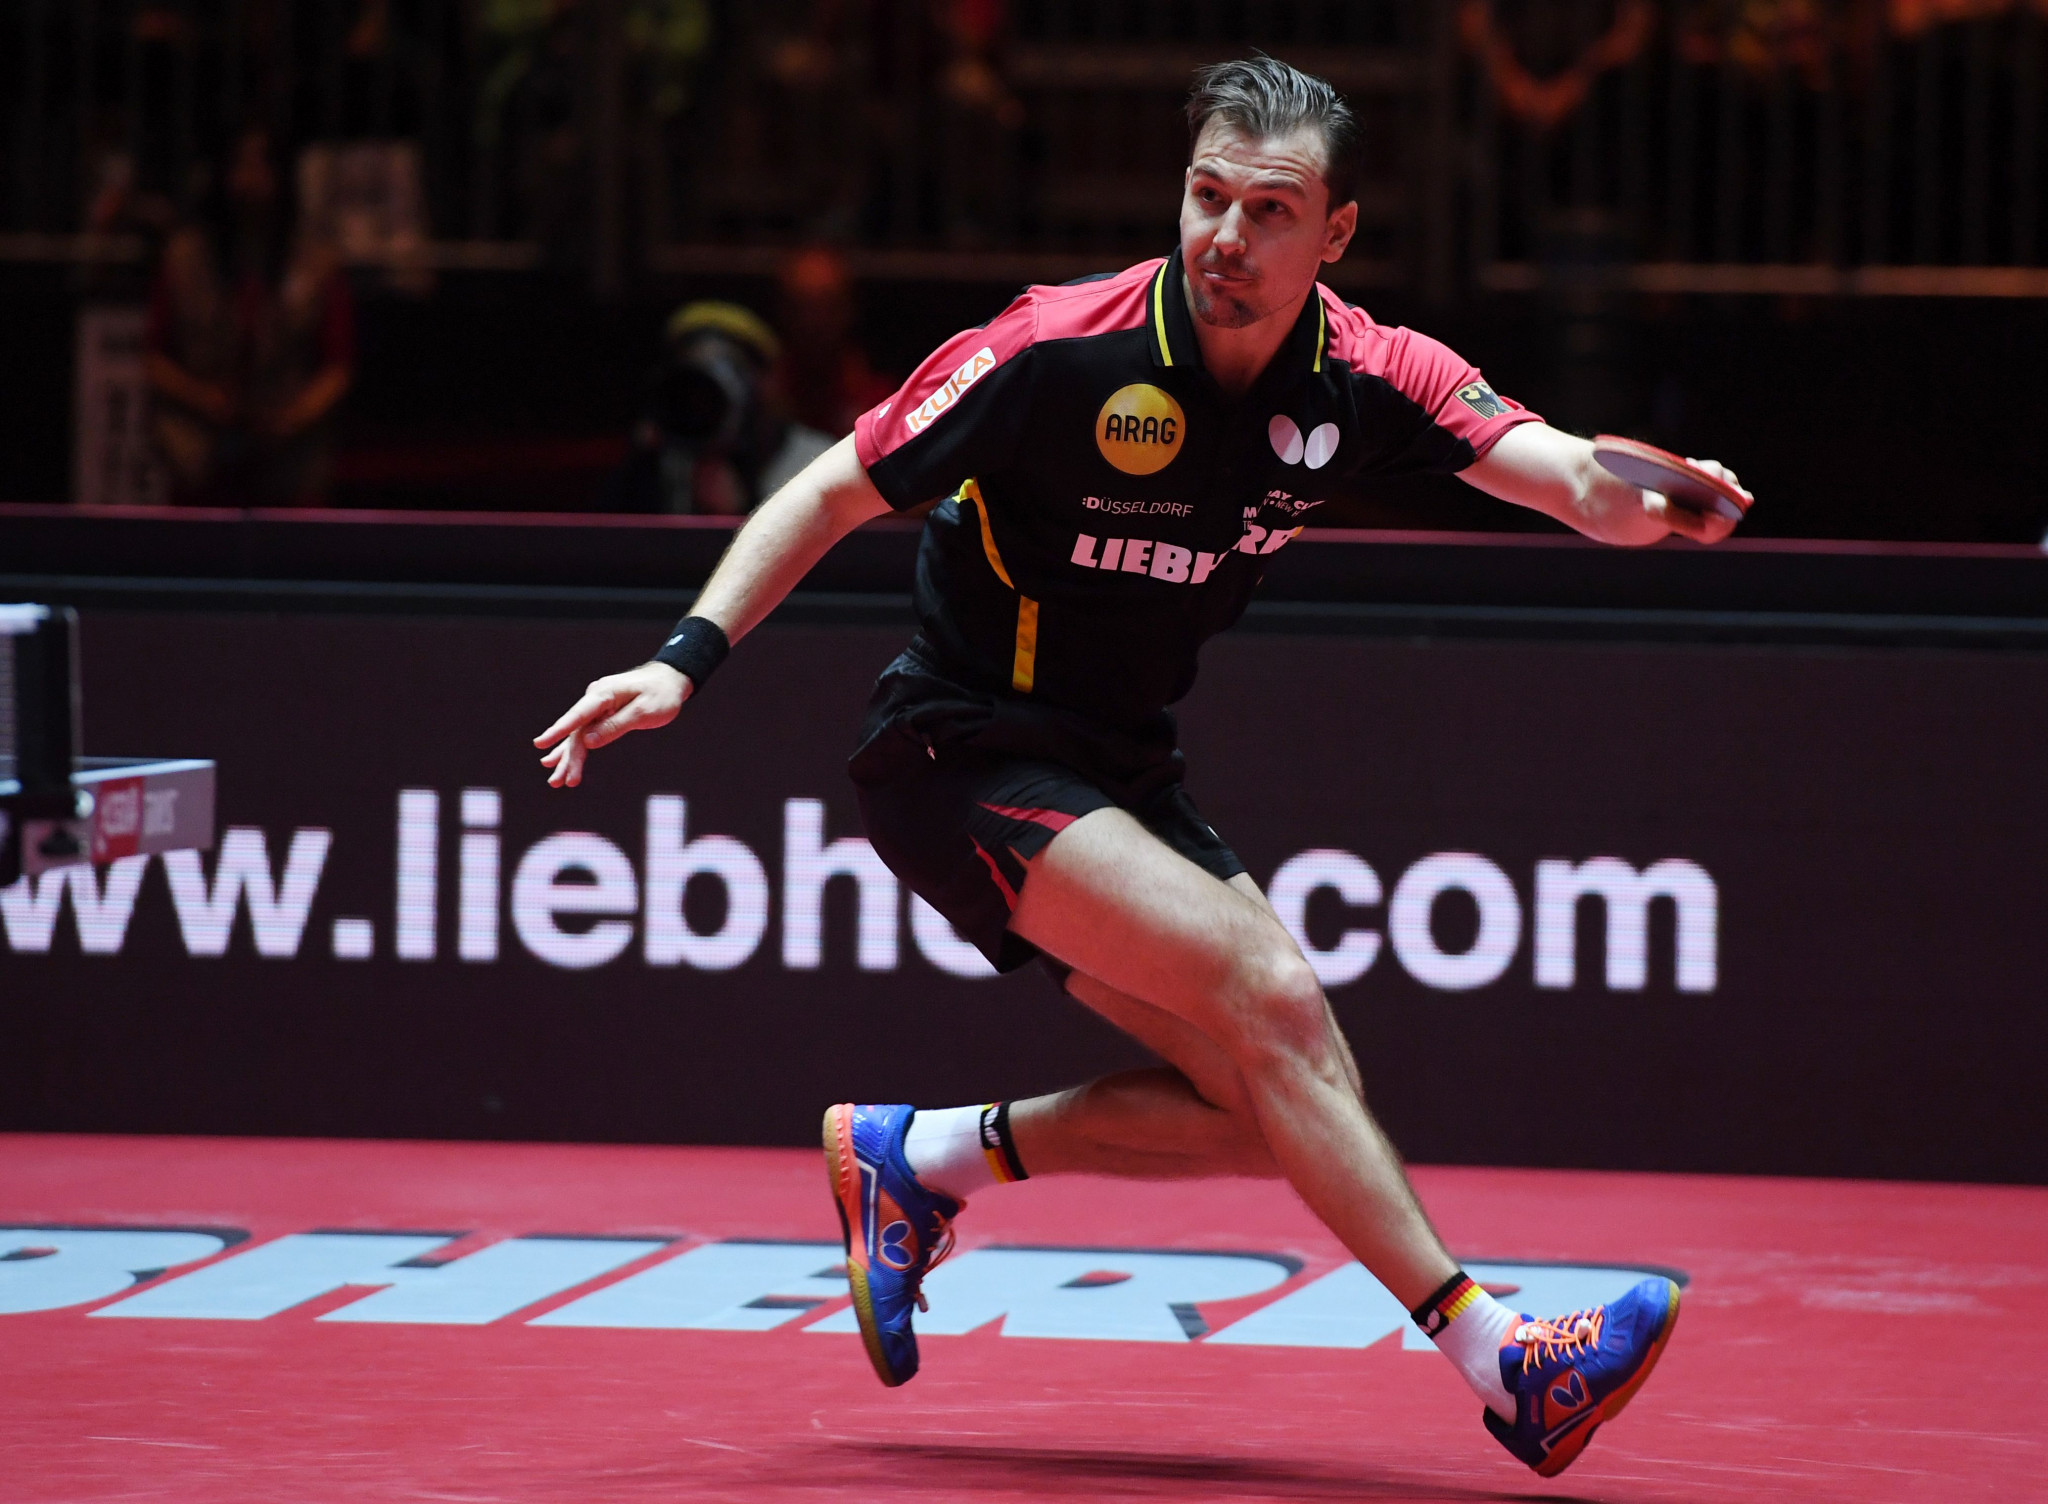 Boll to begin latest stint as world number one at ITTF Qatar Open